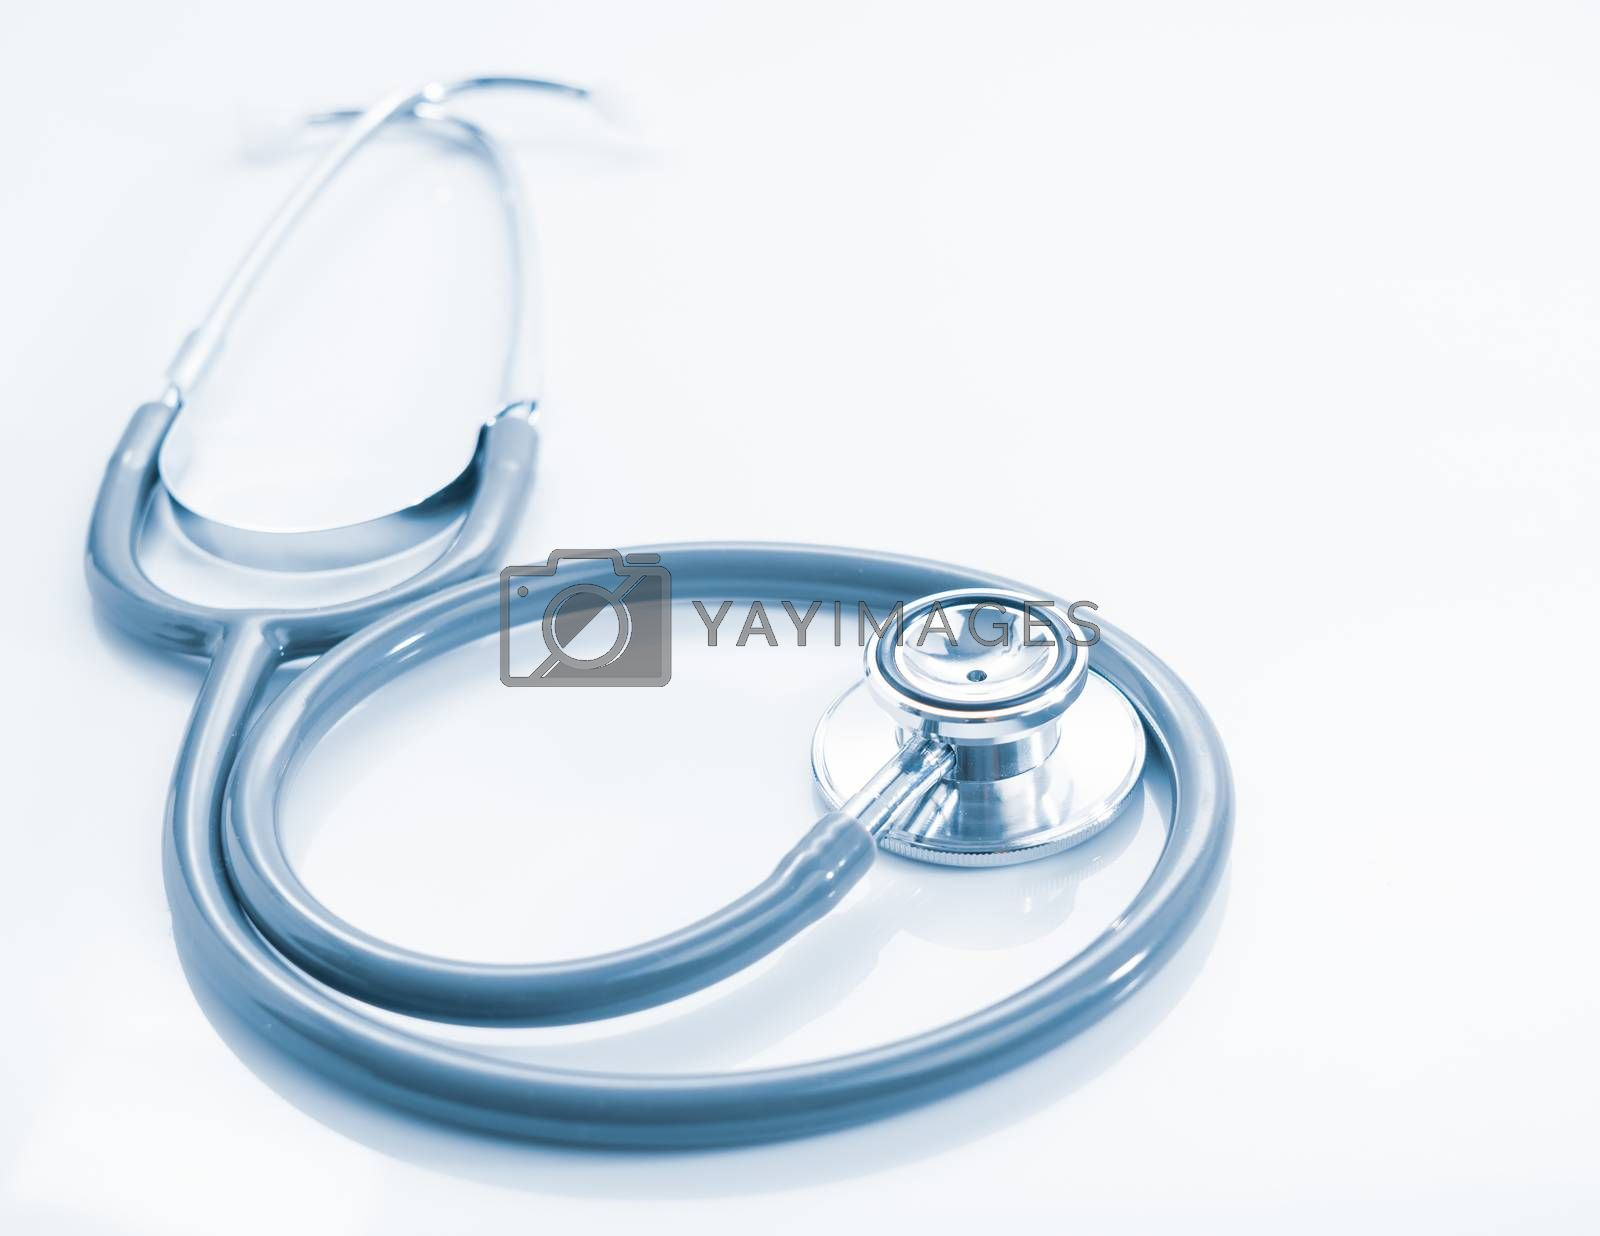 Stethoscope for doctor checkup on health medical laboratory table as medical concept